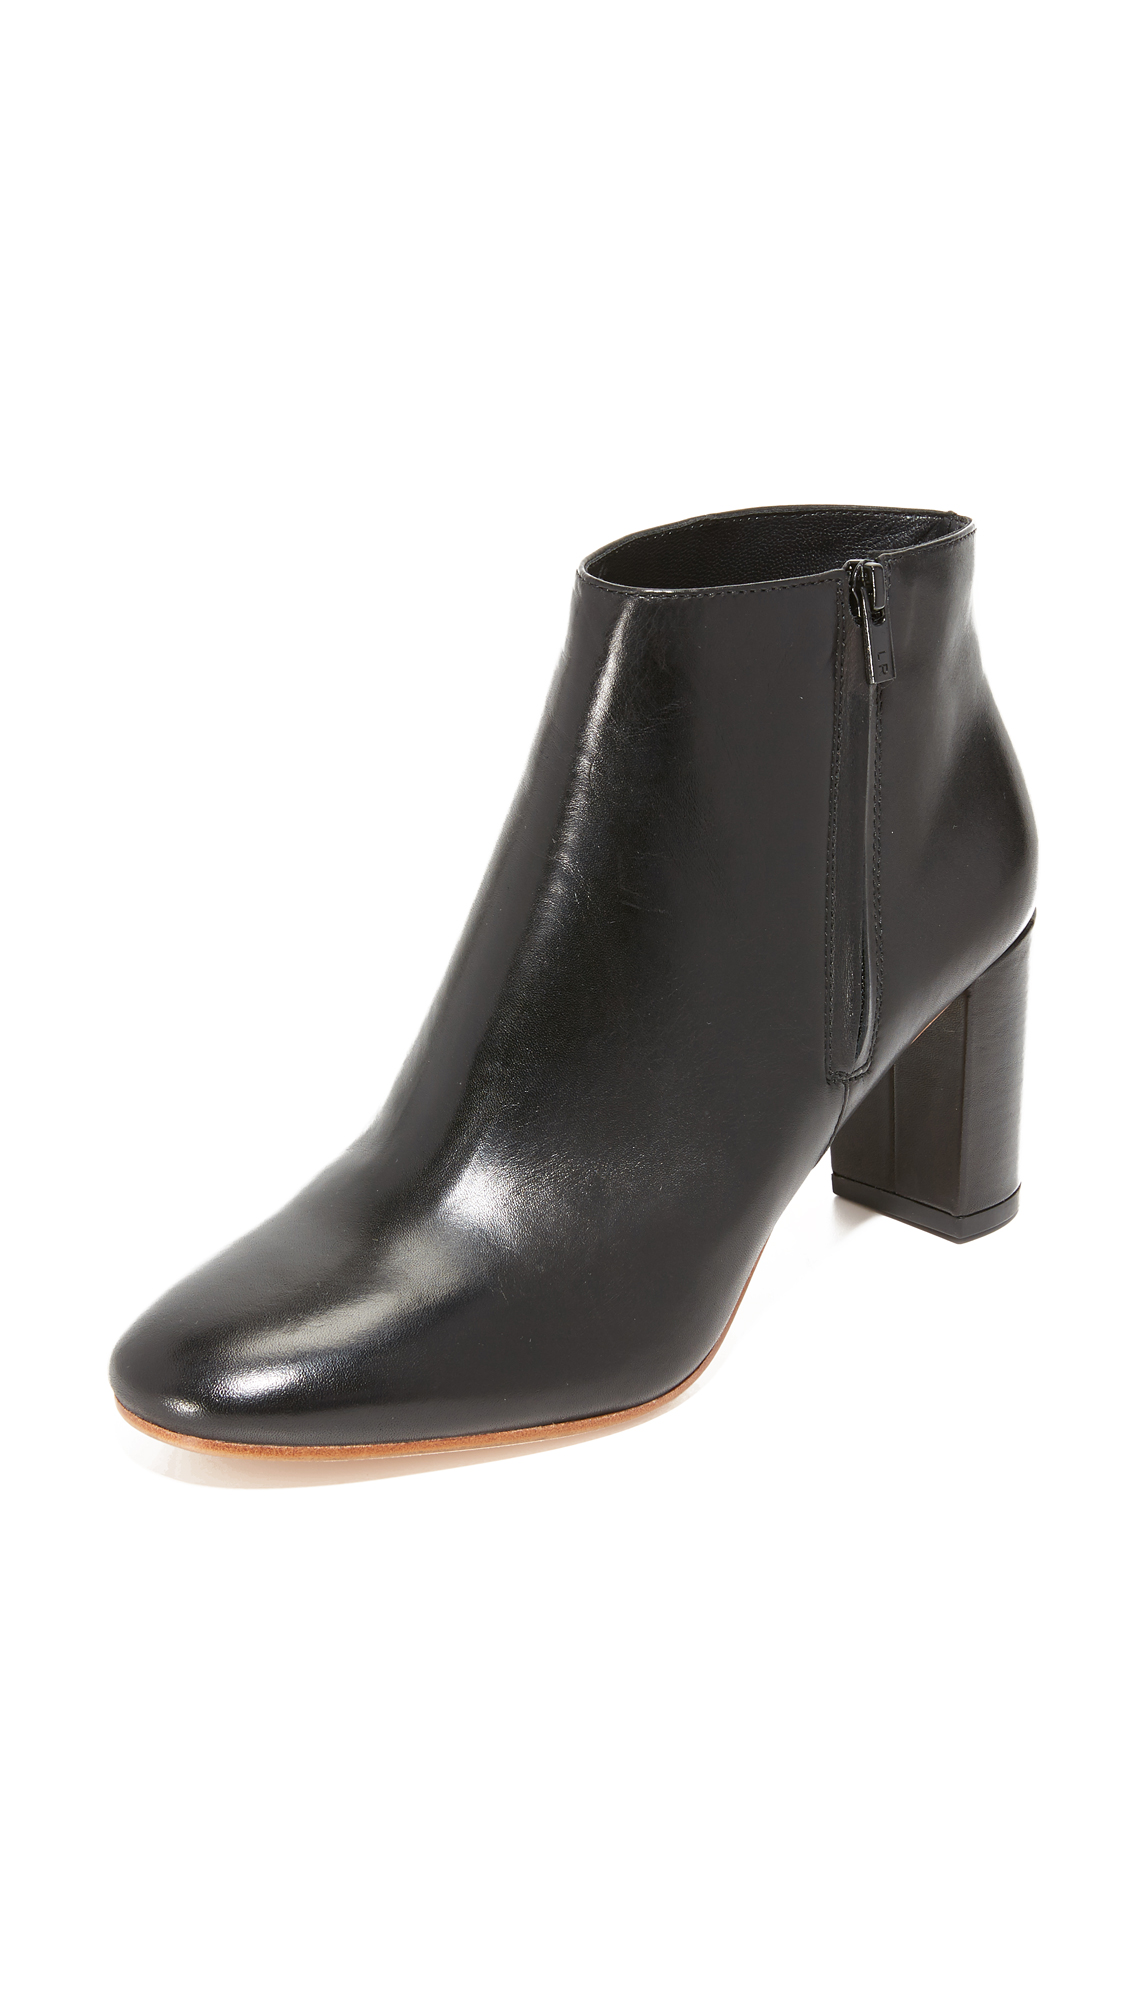 Loeffler Randall Greer Booties - Black